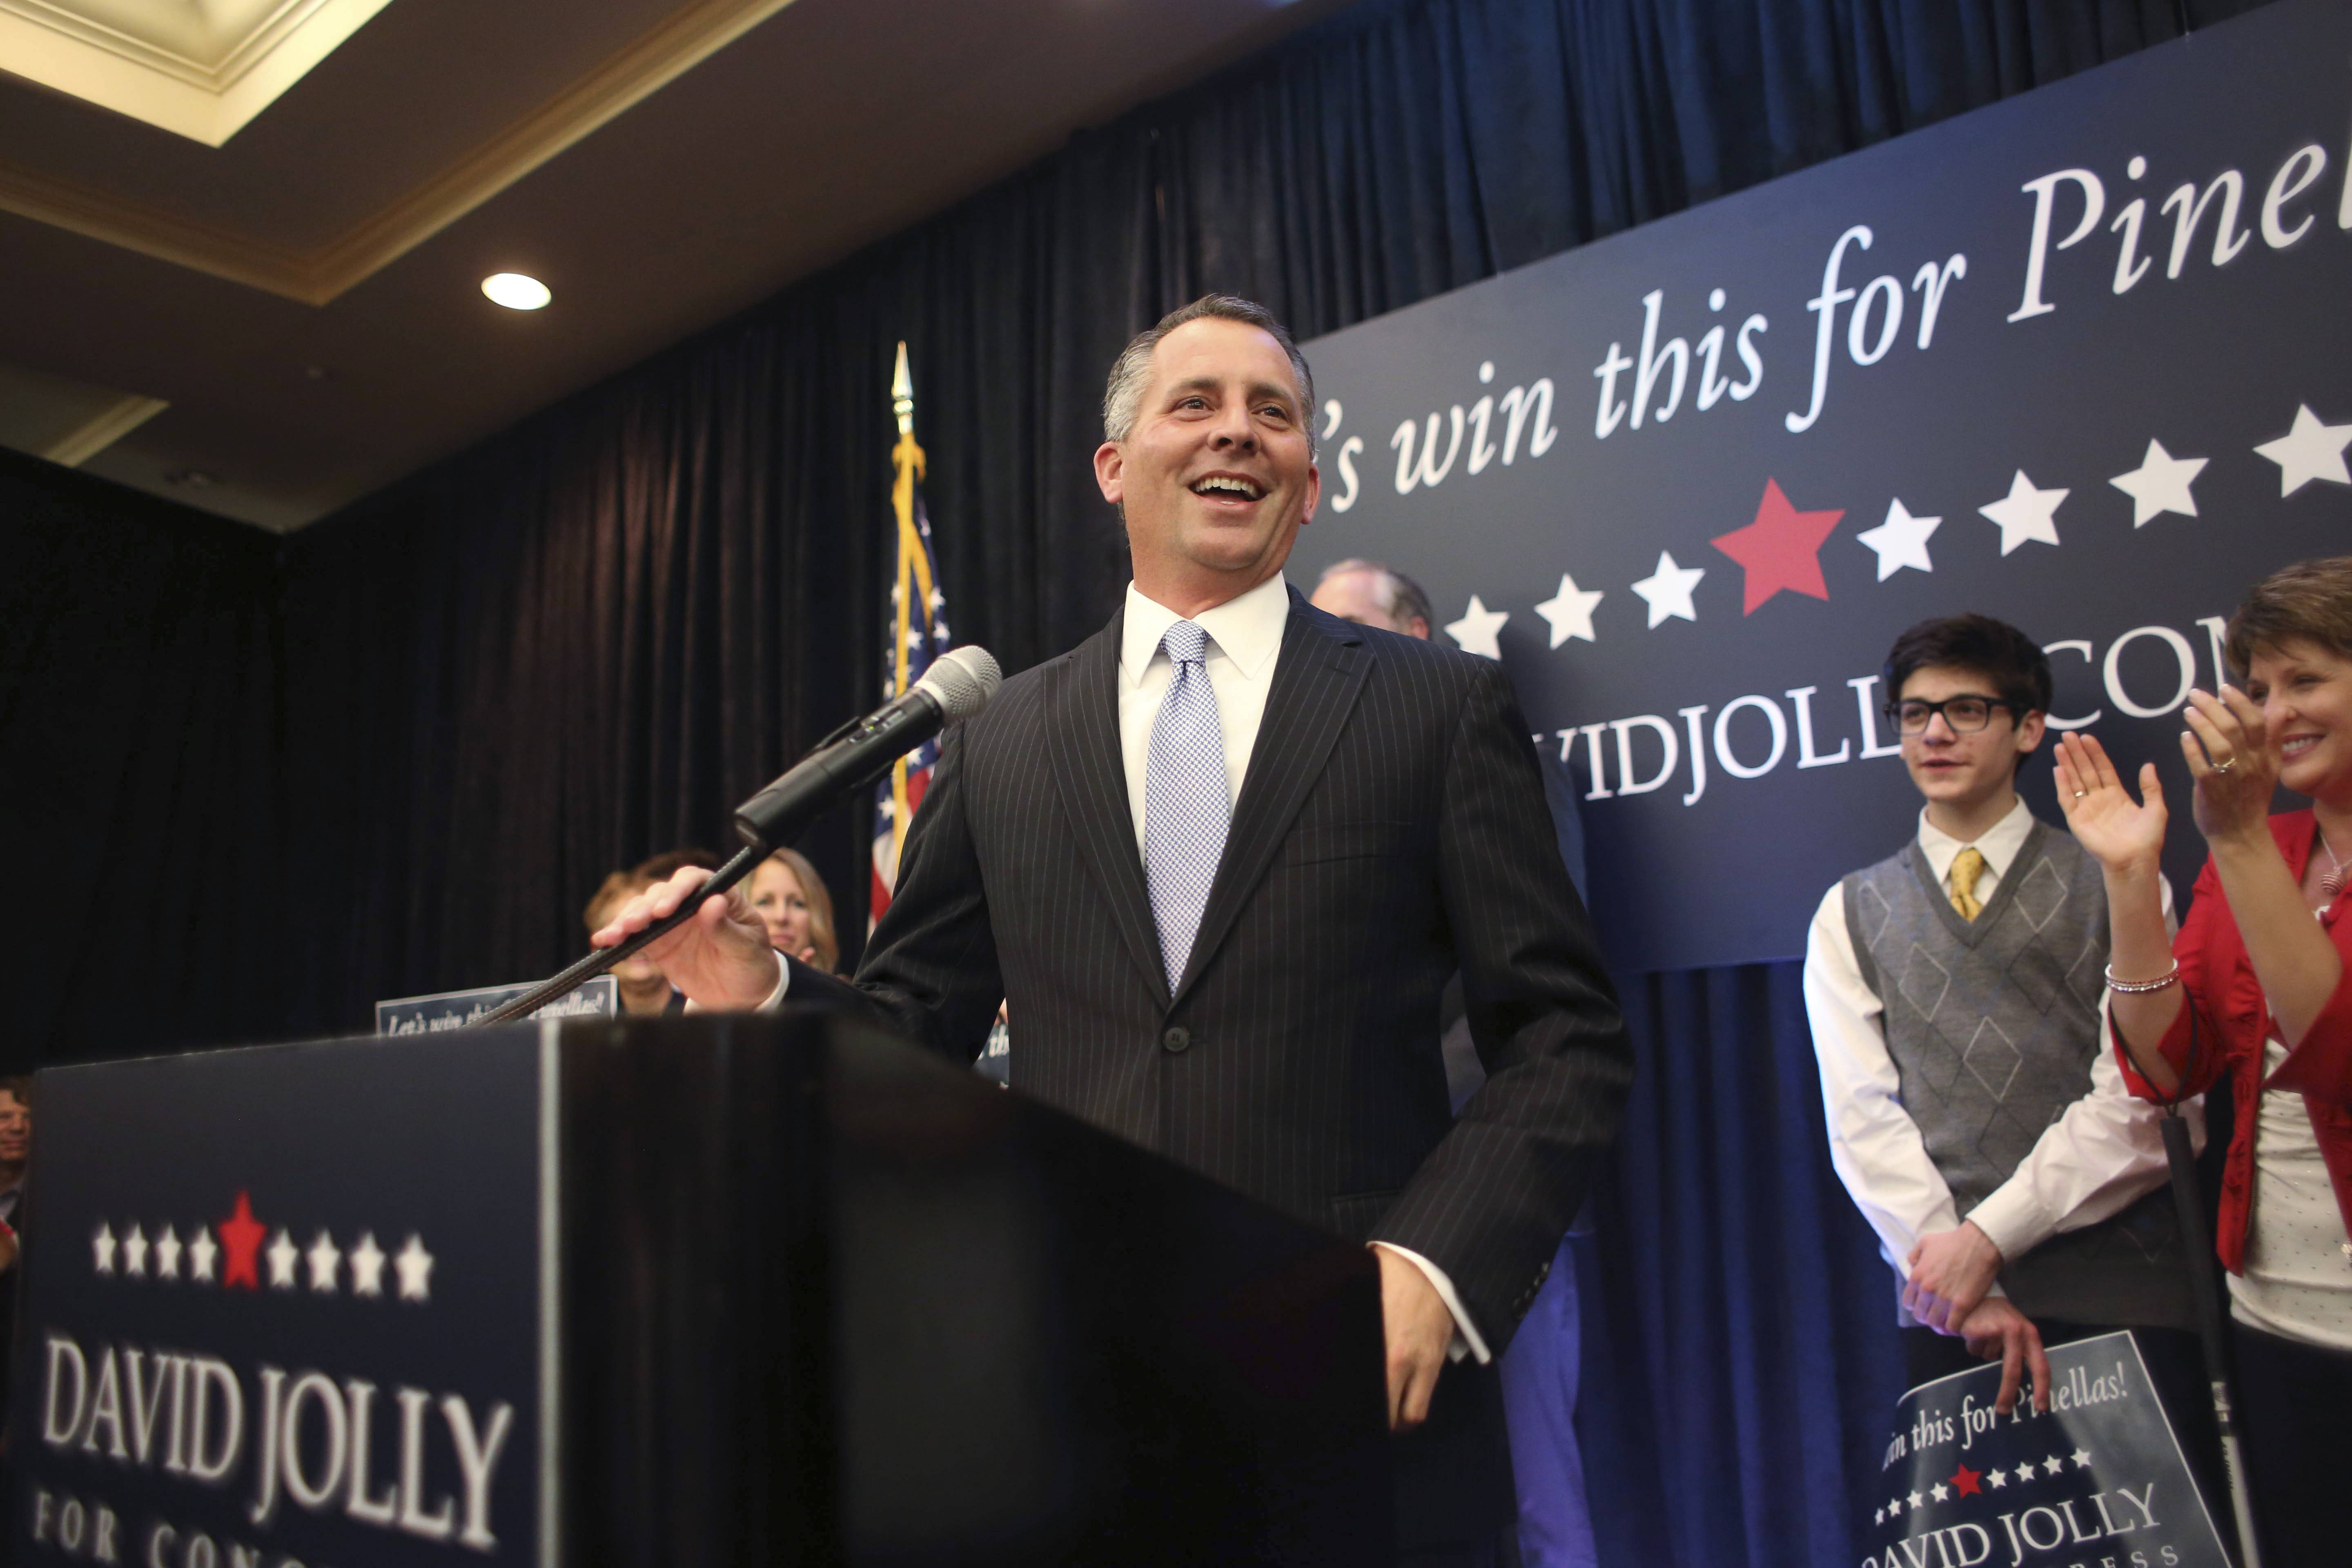 Republican David Jolly defeated Democrat Alex Sink in a special election to the U.S. House in Florida Tuesday.